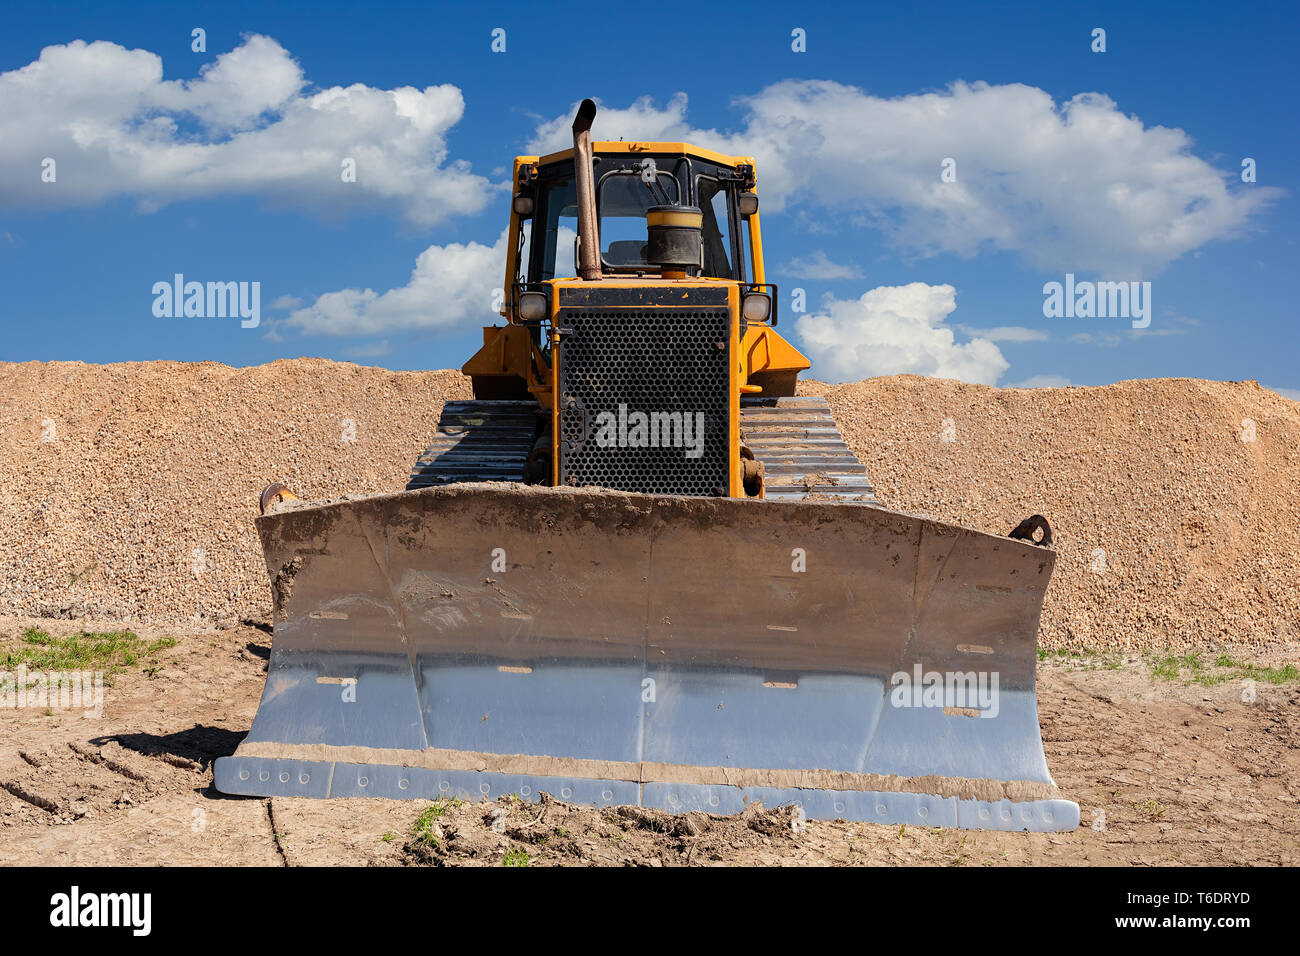 Yellow dozer on a dirt terrain with blue sky with clouds in the background - Stock Image